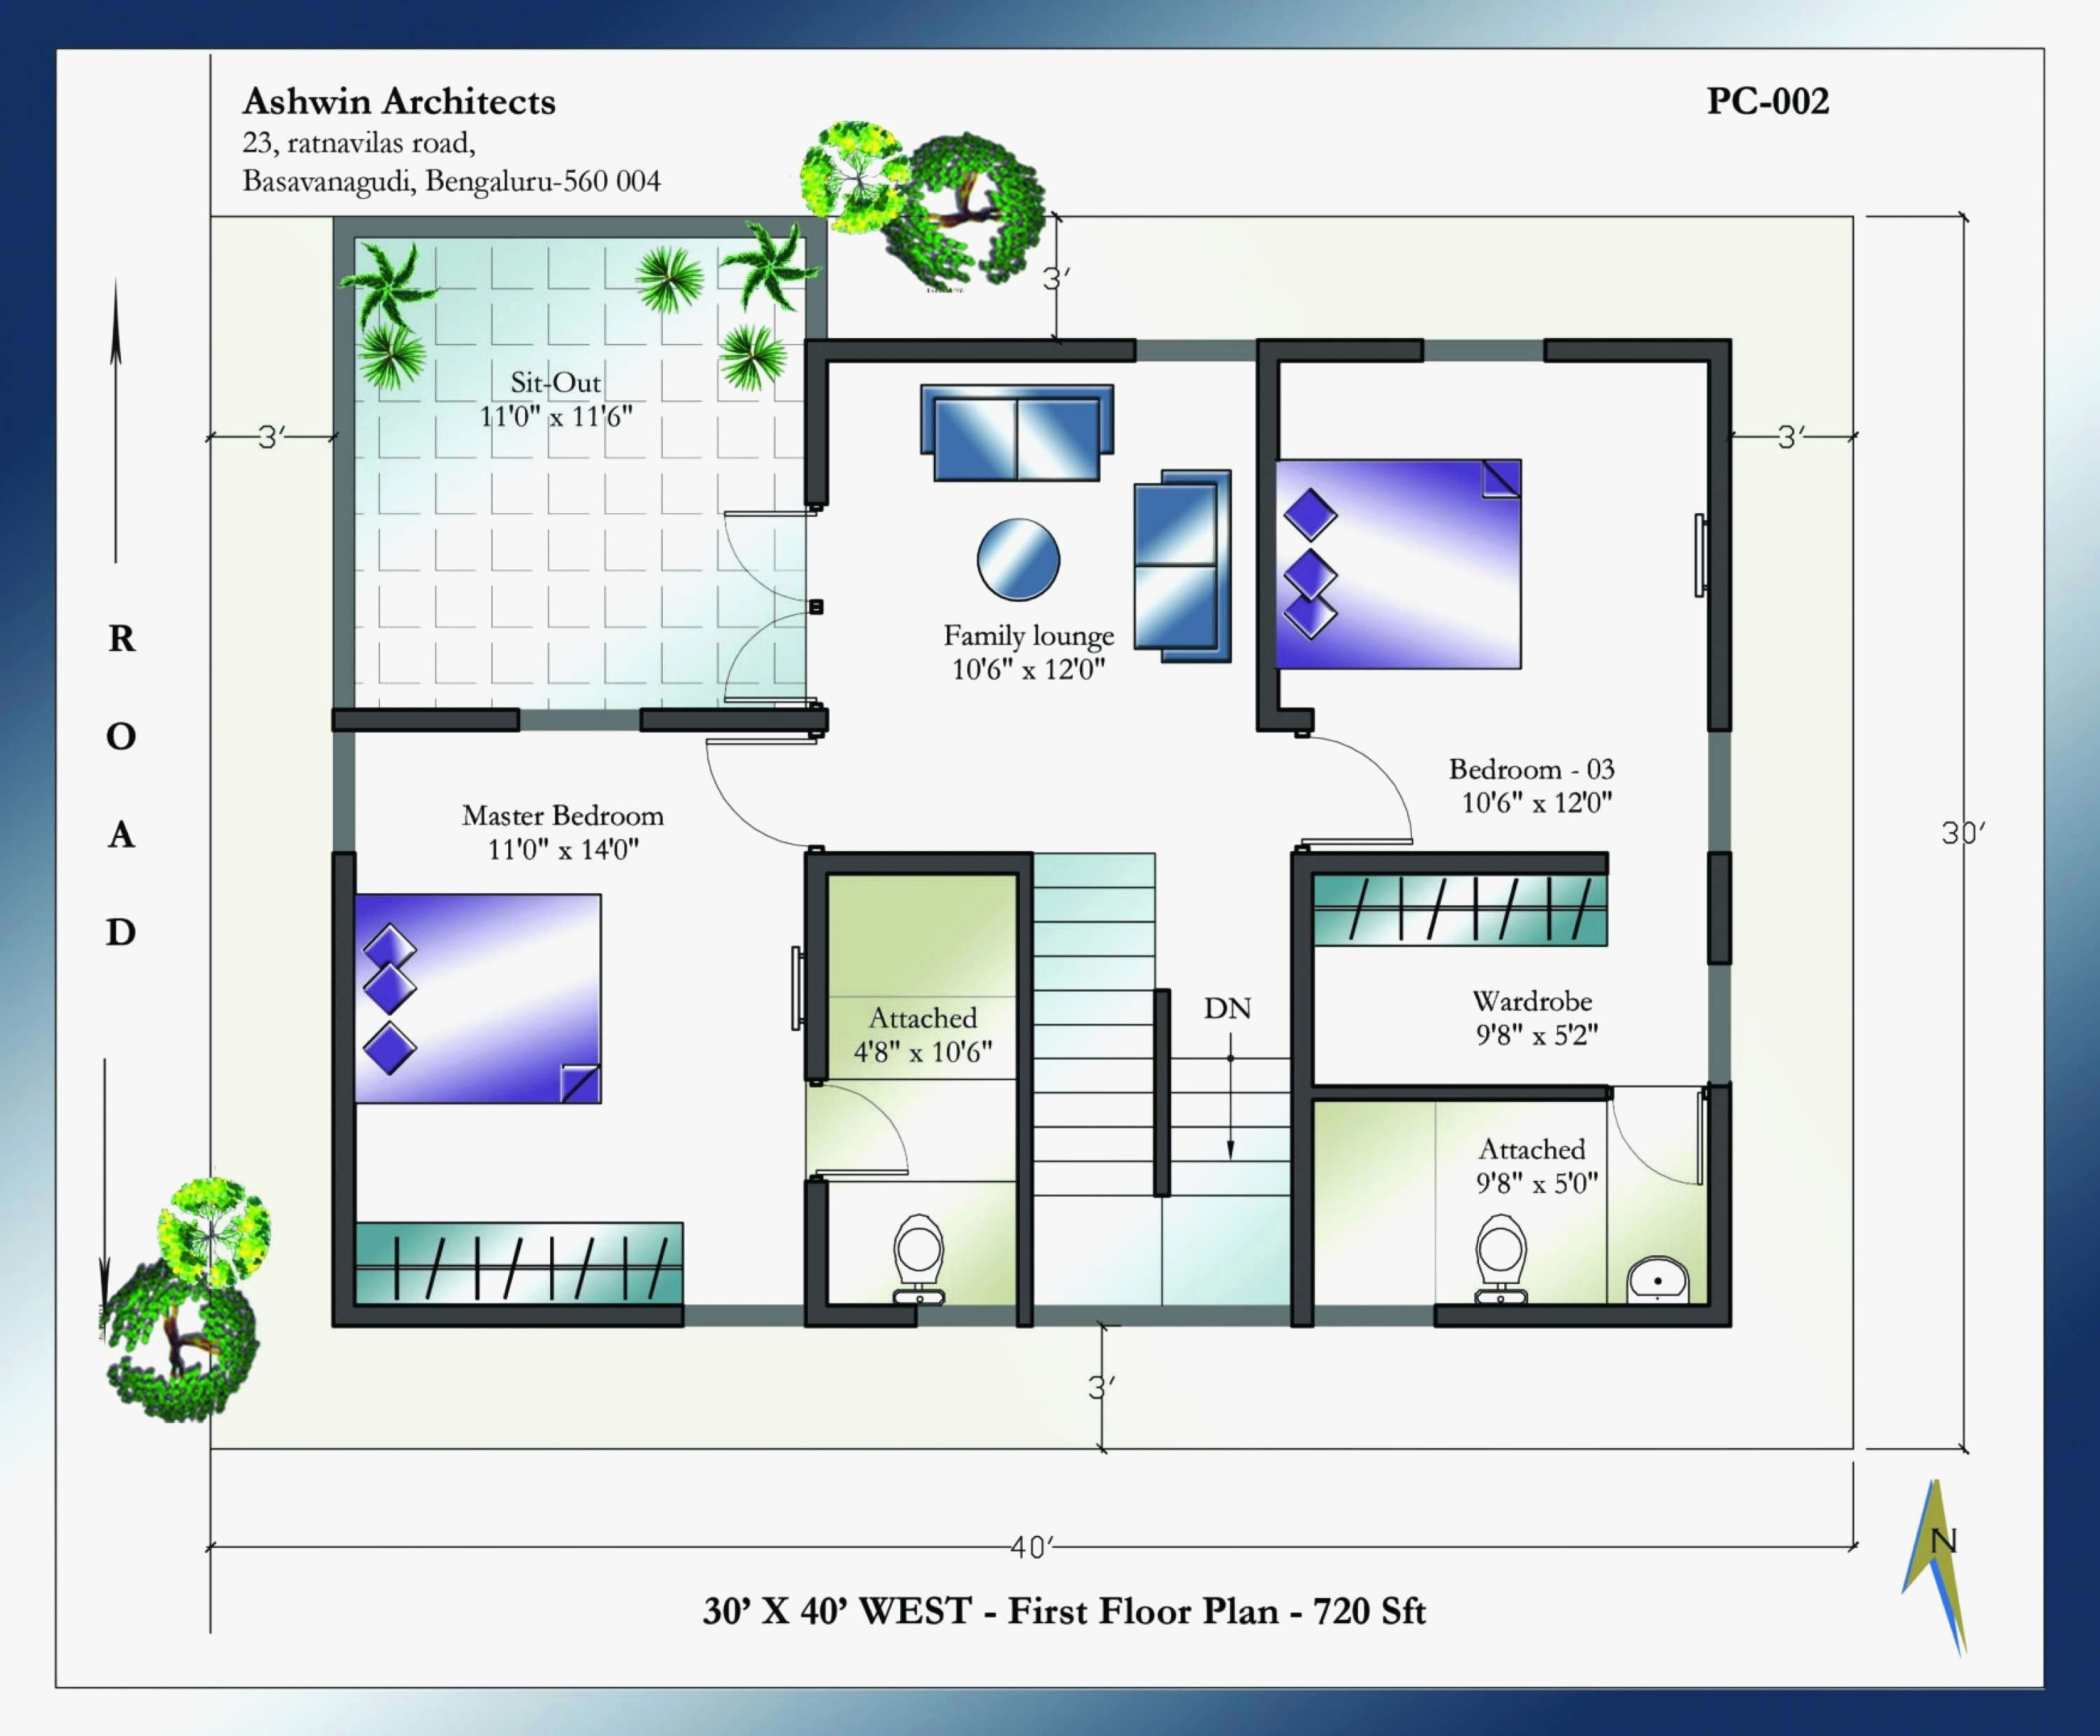 30 X 40 House Plans Inspiring Idea Interior Design Brady Bunch Floor Plan Best Software Layout Awesome 50 Unique Smal West Facing House Floor Plans House Plans